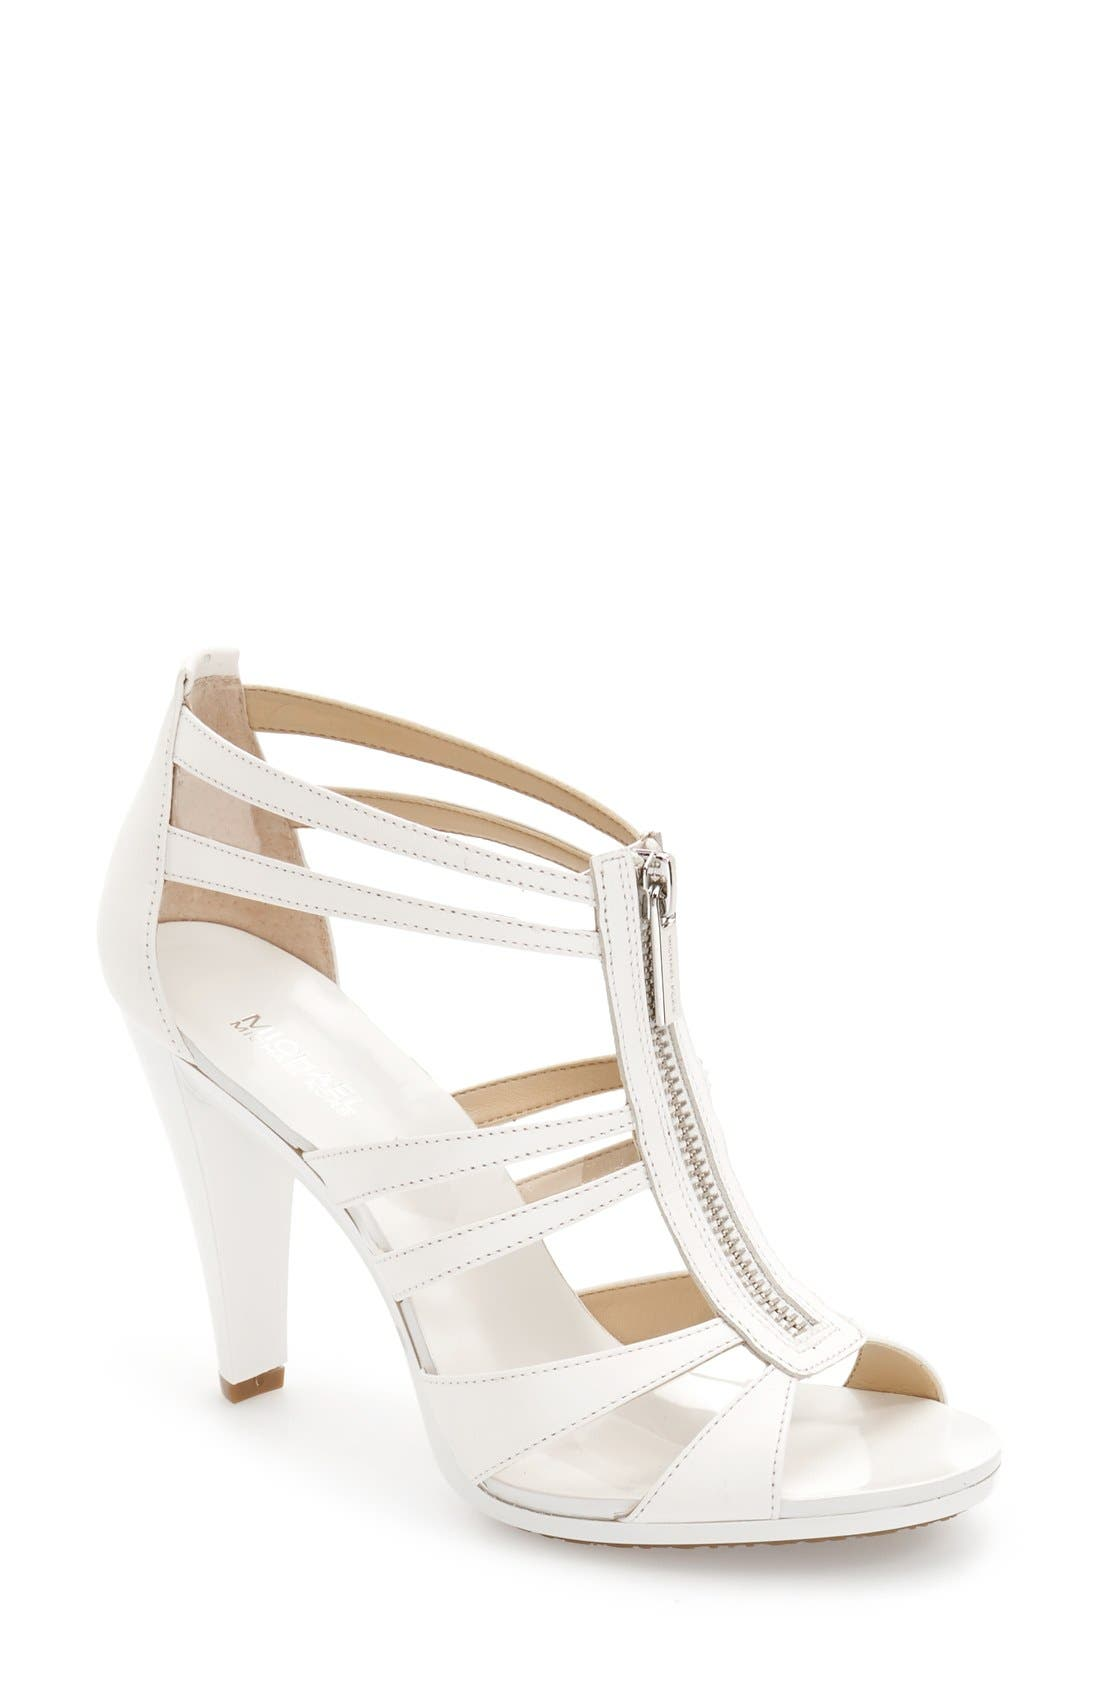 Alternate Image 1 Selected - MICHAEL Michael Kors 'Berkley' T-Strap Sandal (Women)